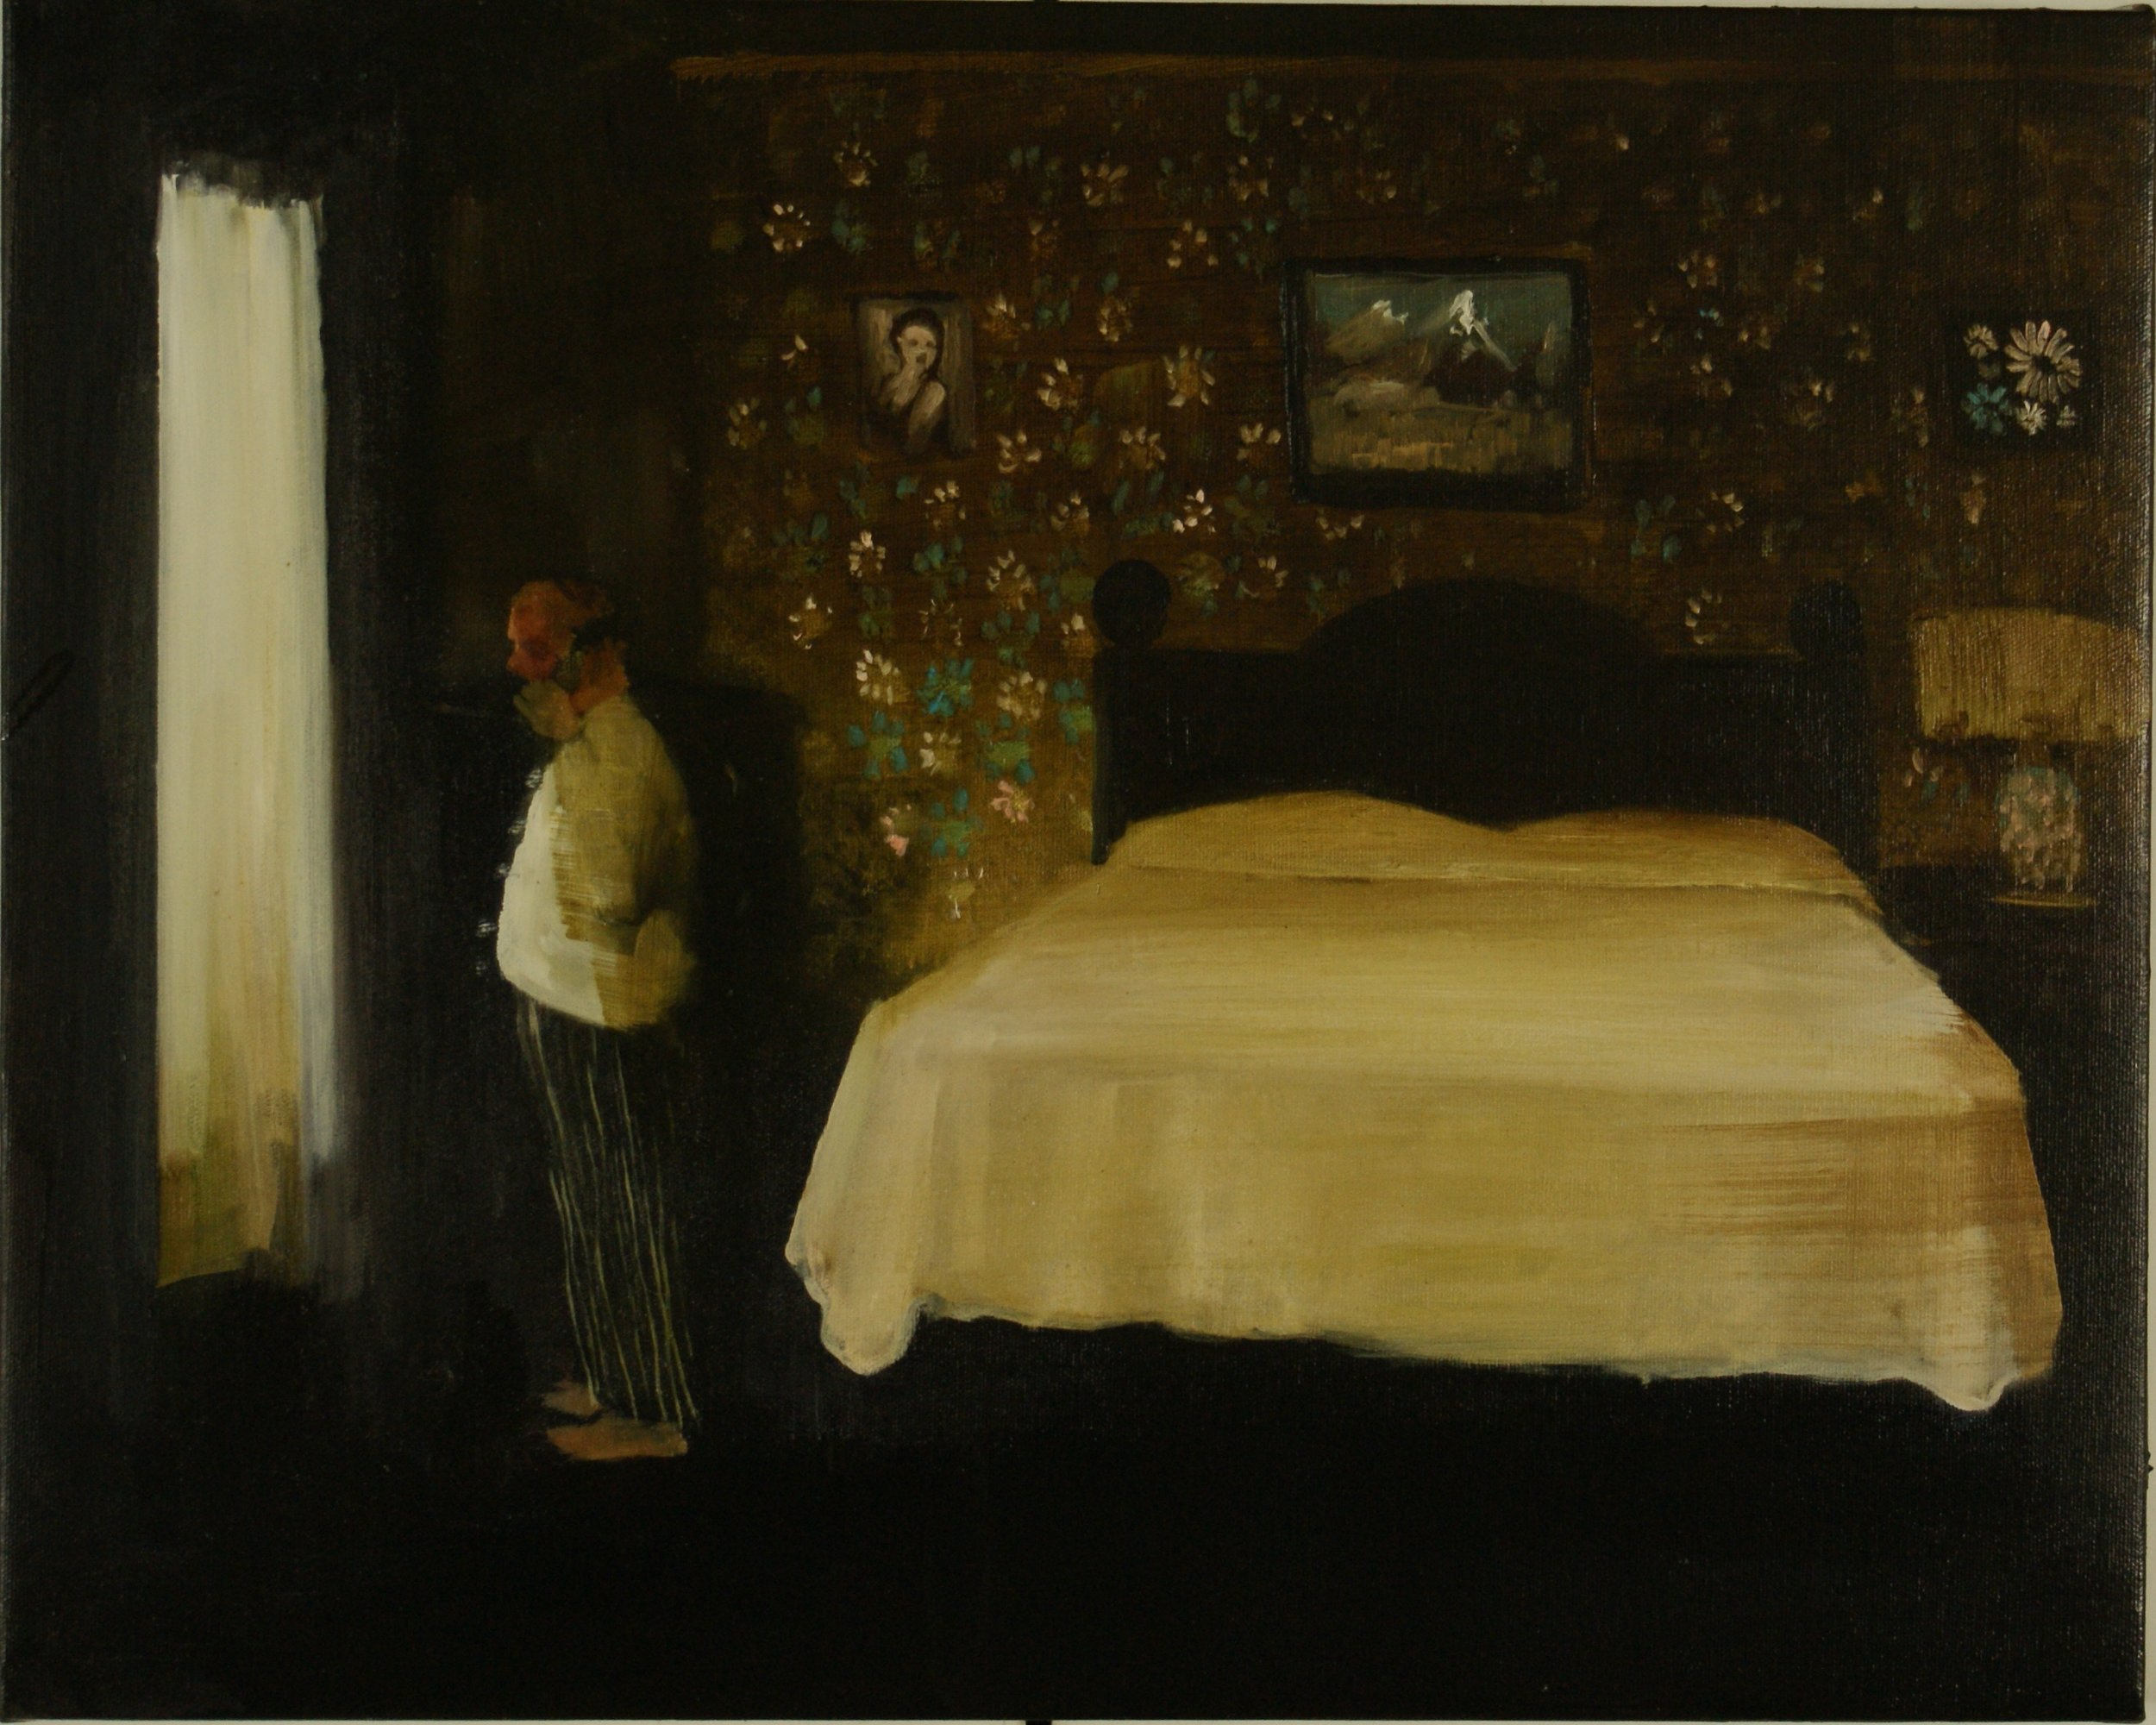 Short Man in his Room, 2014,oil on canvas, 16 x 20 inches SOLD